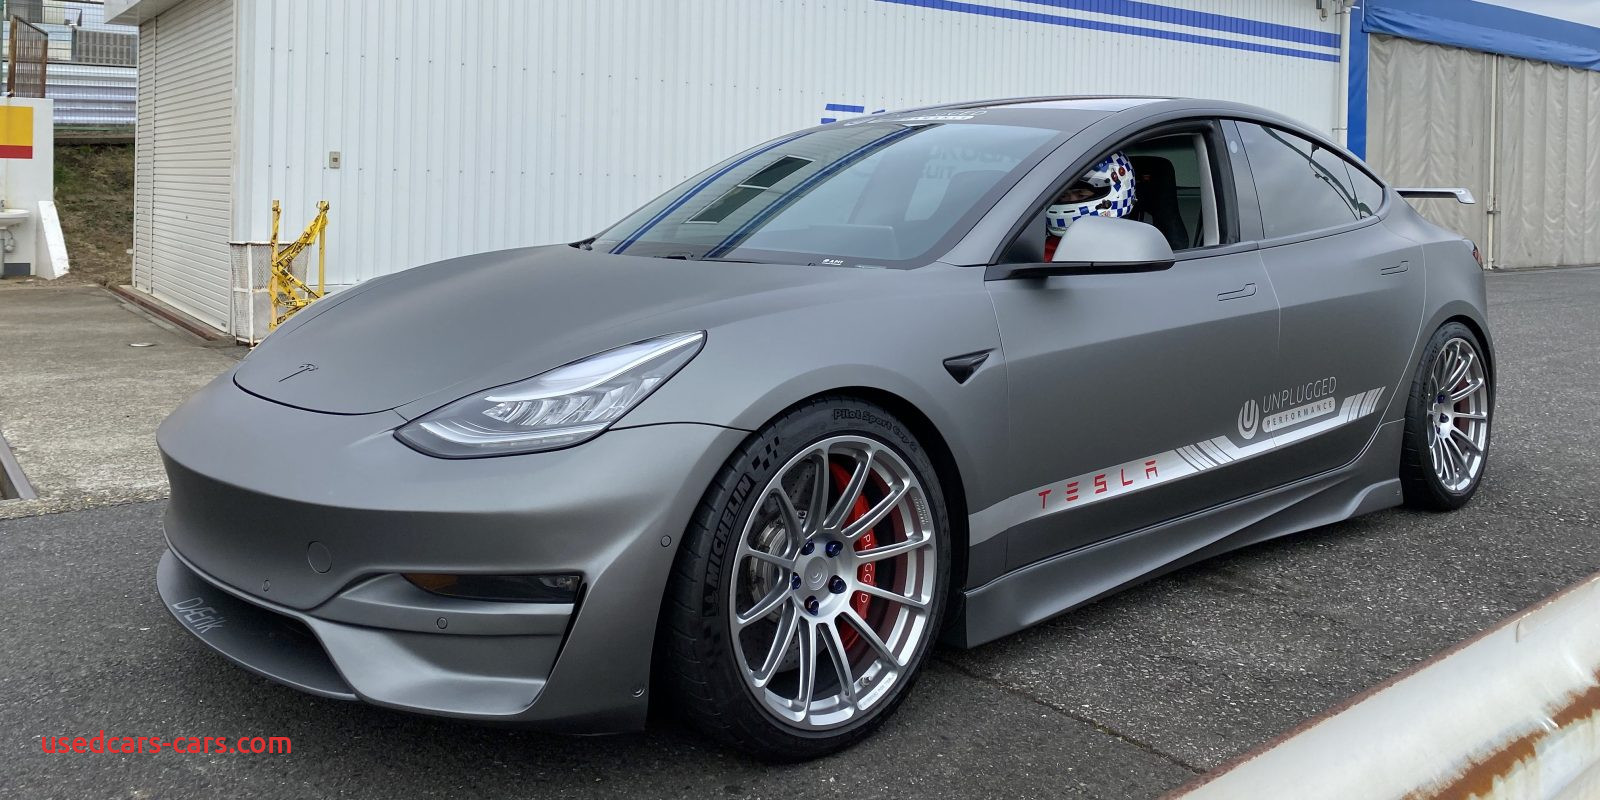 Used Tesla Model 3 Unique Tesla Model 3 with Mods Achieves Petitive Lap with